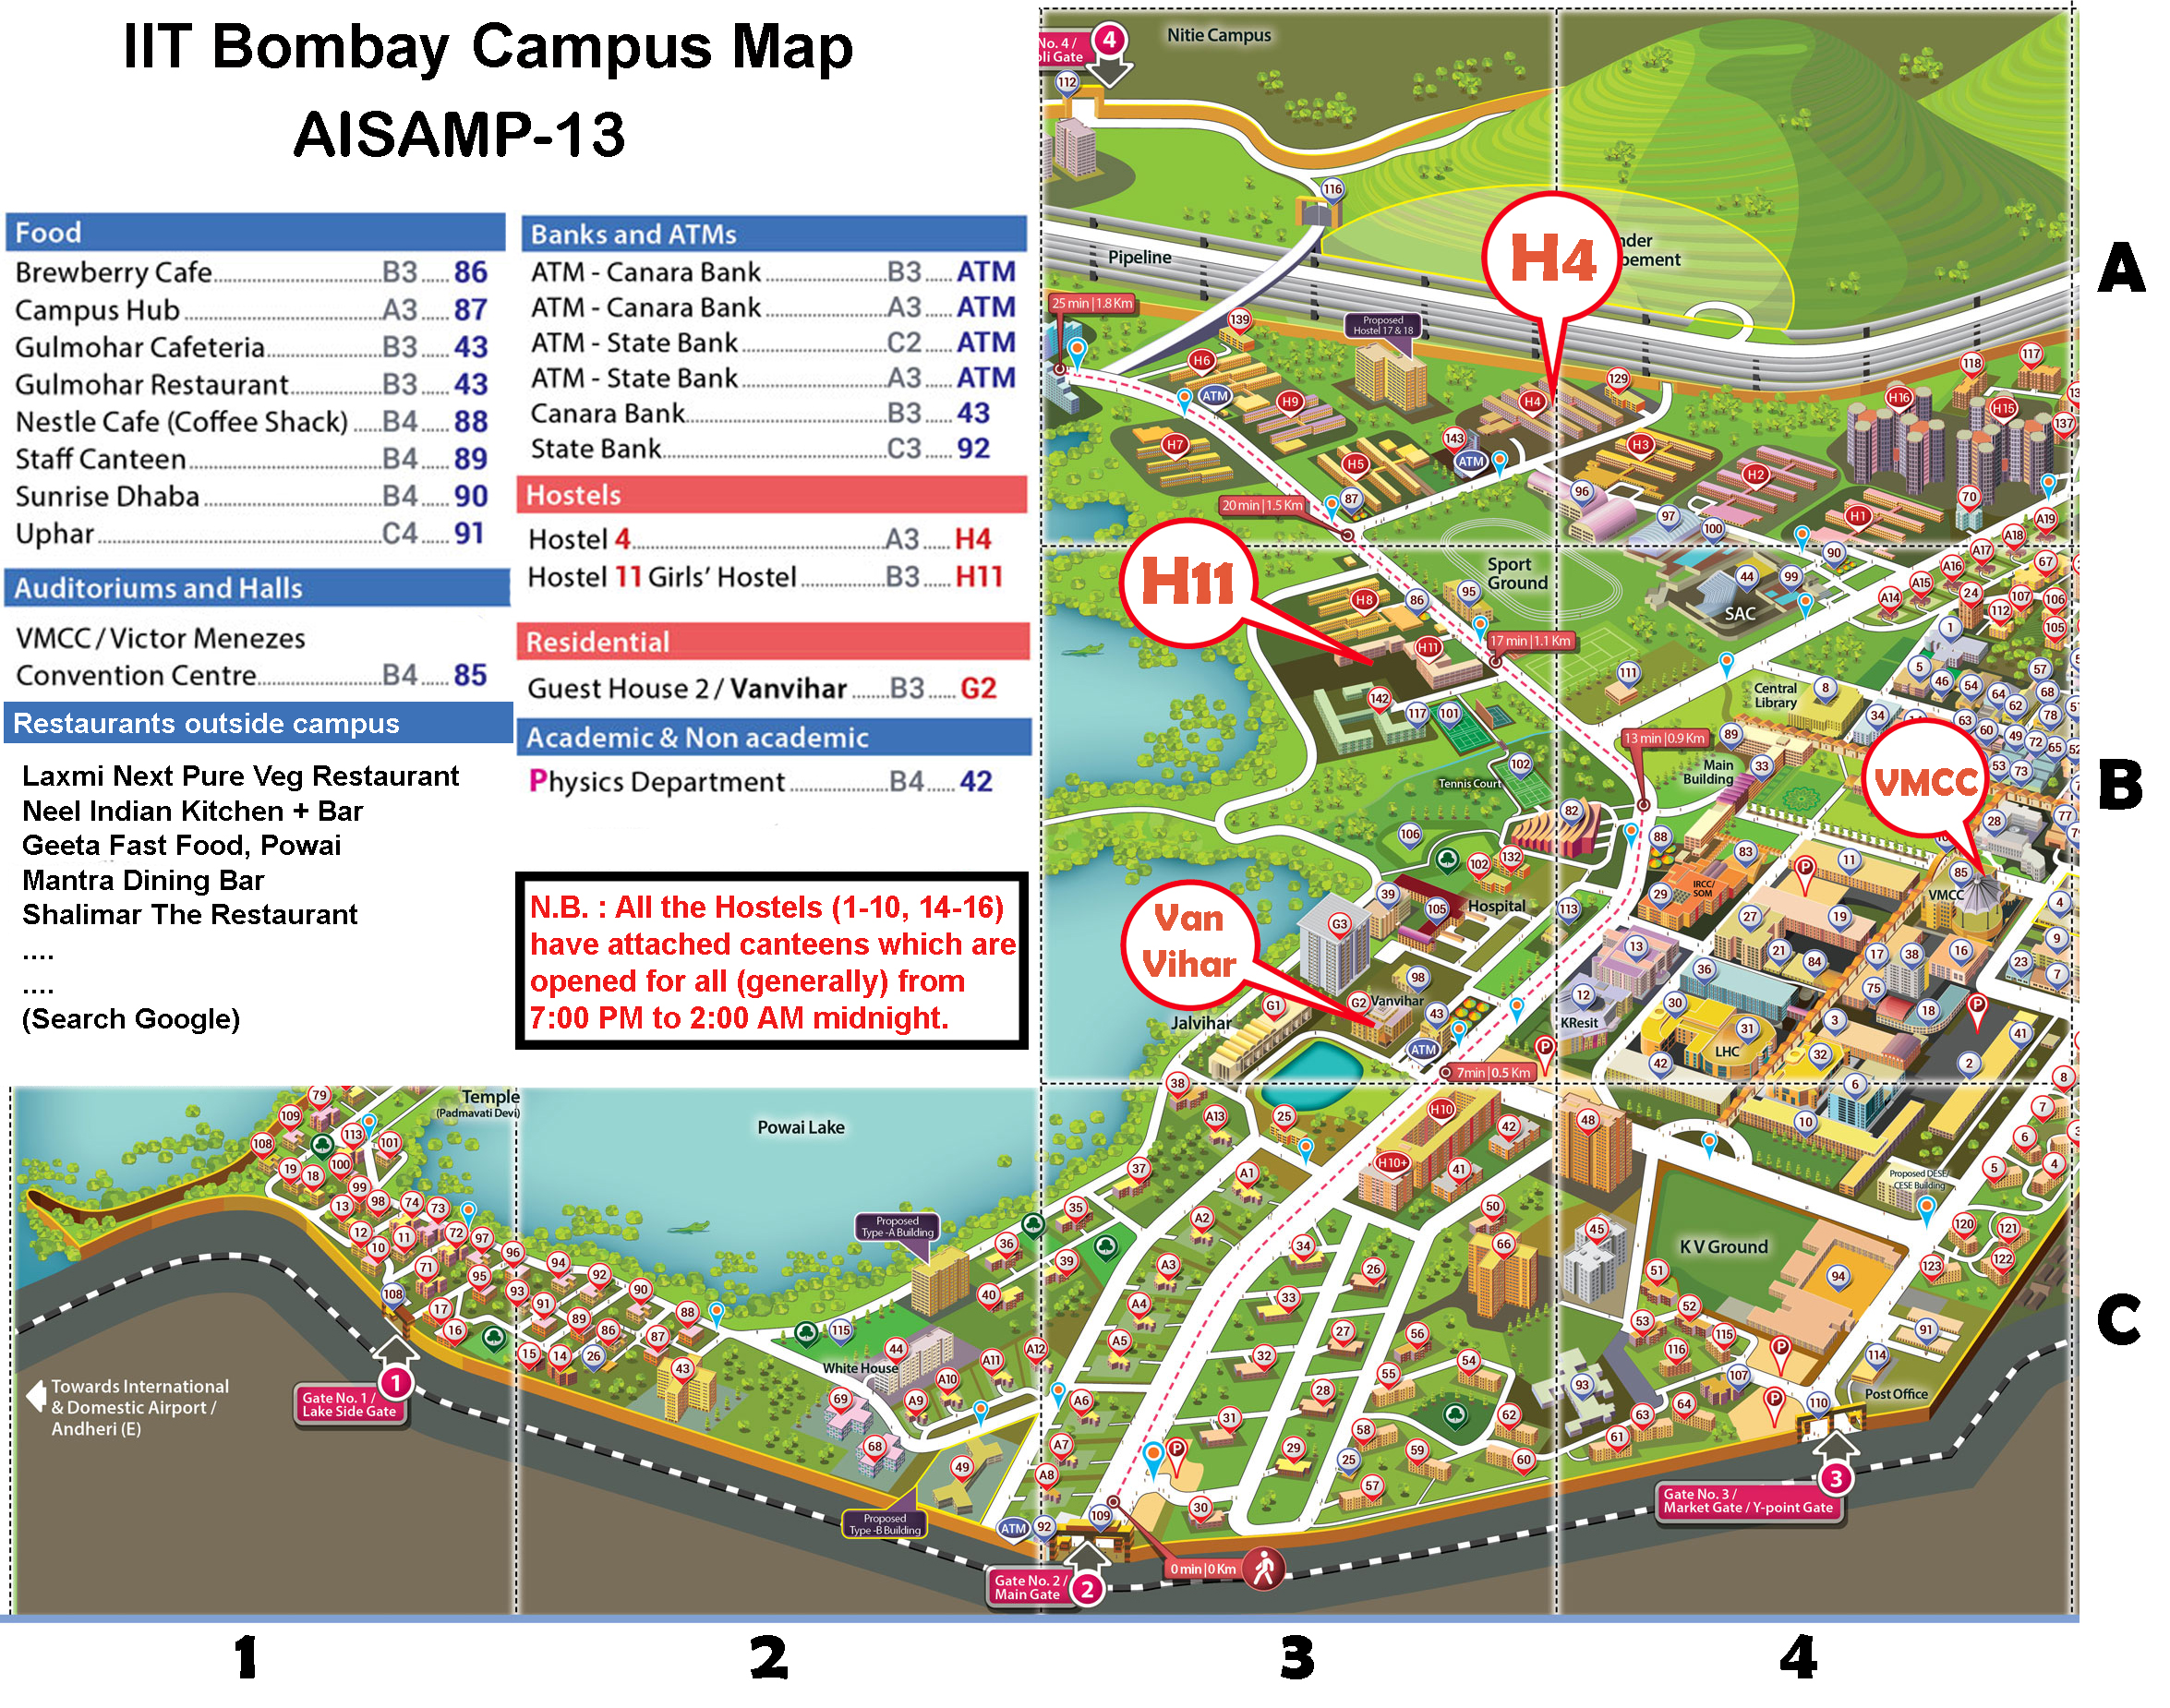 AISAMP 13: Conference Venue on ic campus map, icar campus map, google campus map, samsung campus map, harvard campus map, icc campus map, intel campus map, nic campus map, cabrillo high school campus map, main campus map, engineering campus map, microsoft campus map, jnu campus map, maine campus map, ssc campus map, motorola campus map, umc campus map, yale campus map, itc campus map, mit campus map,